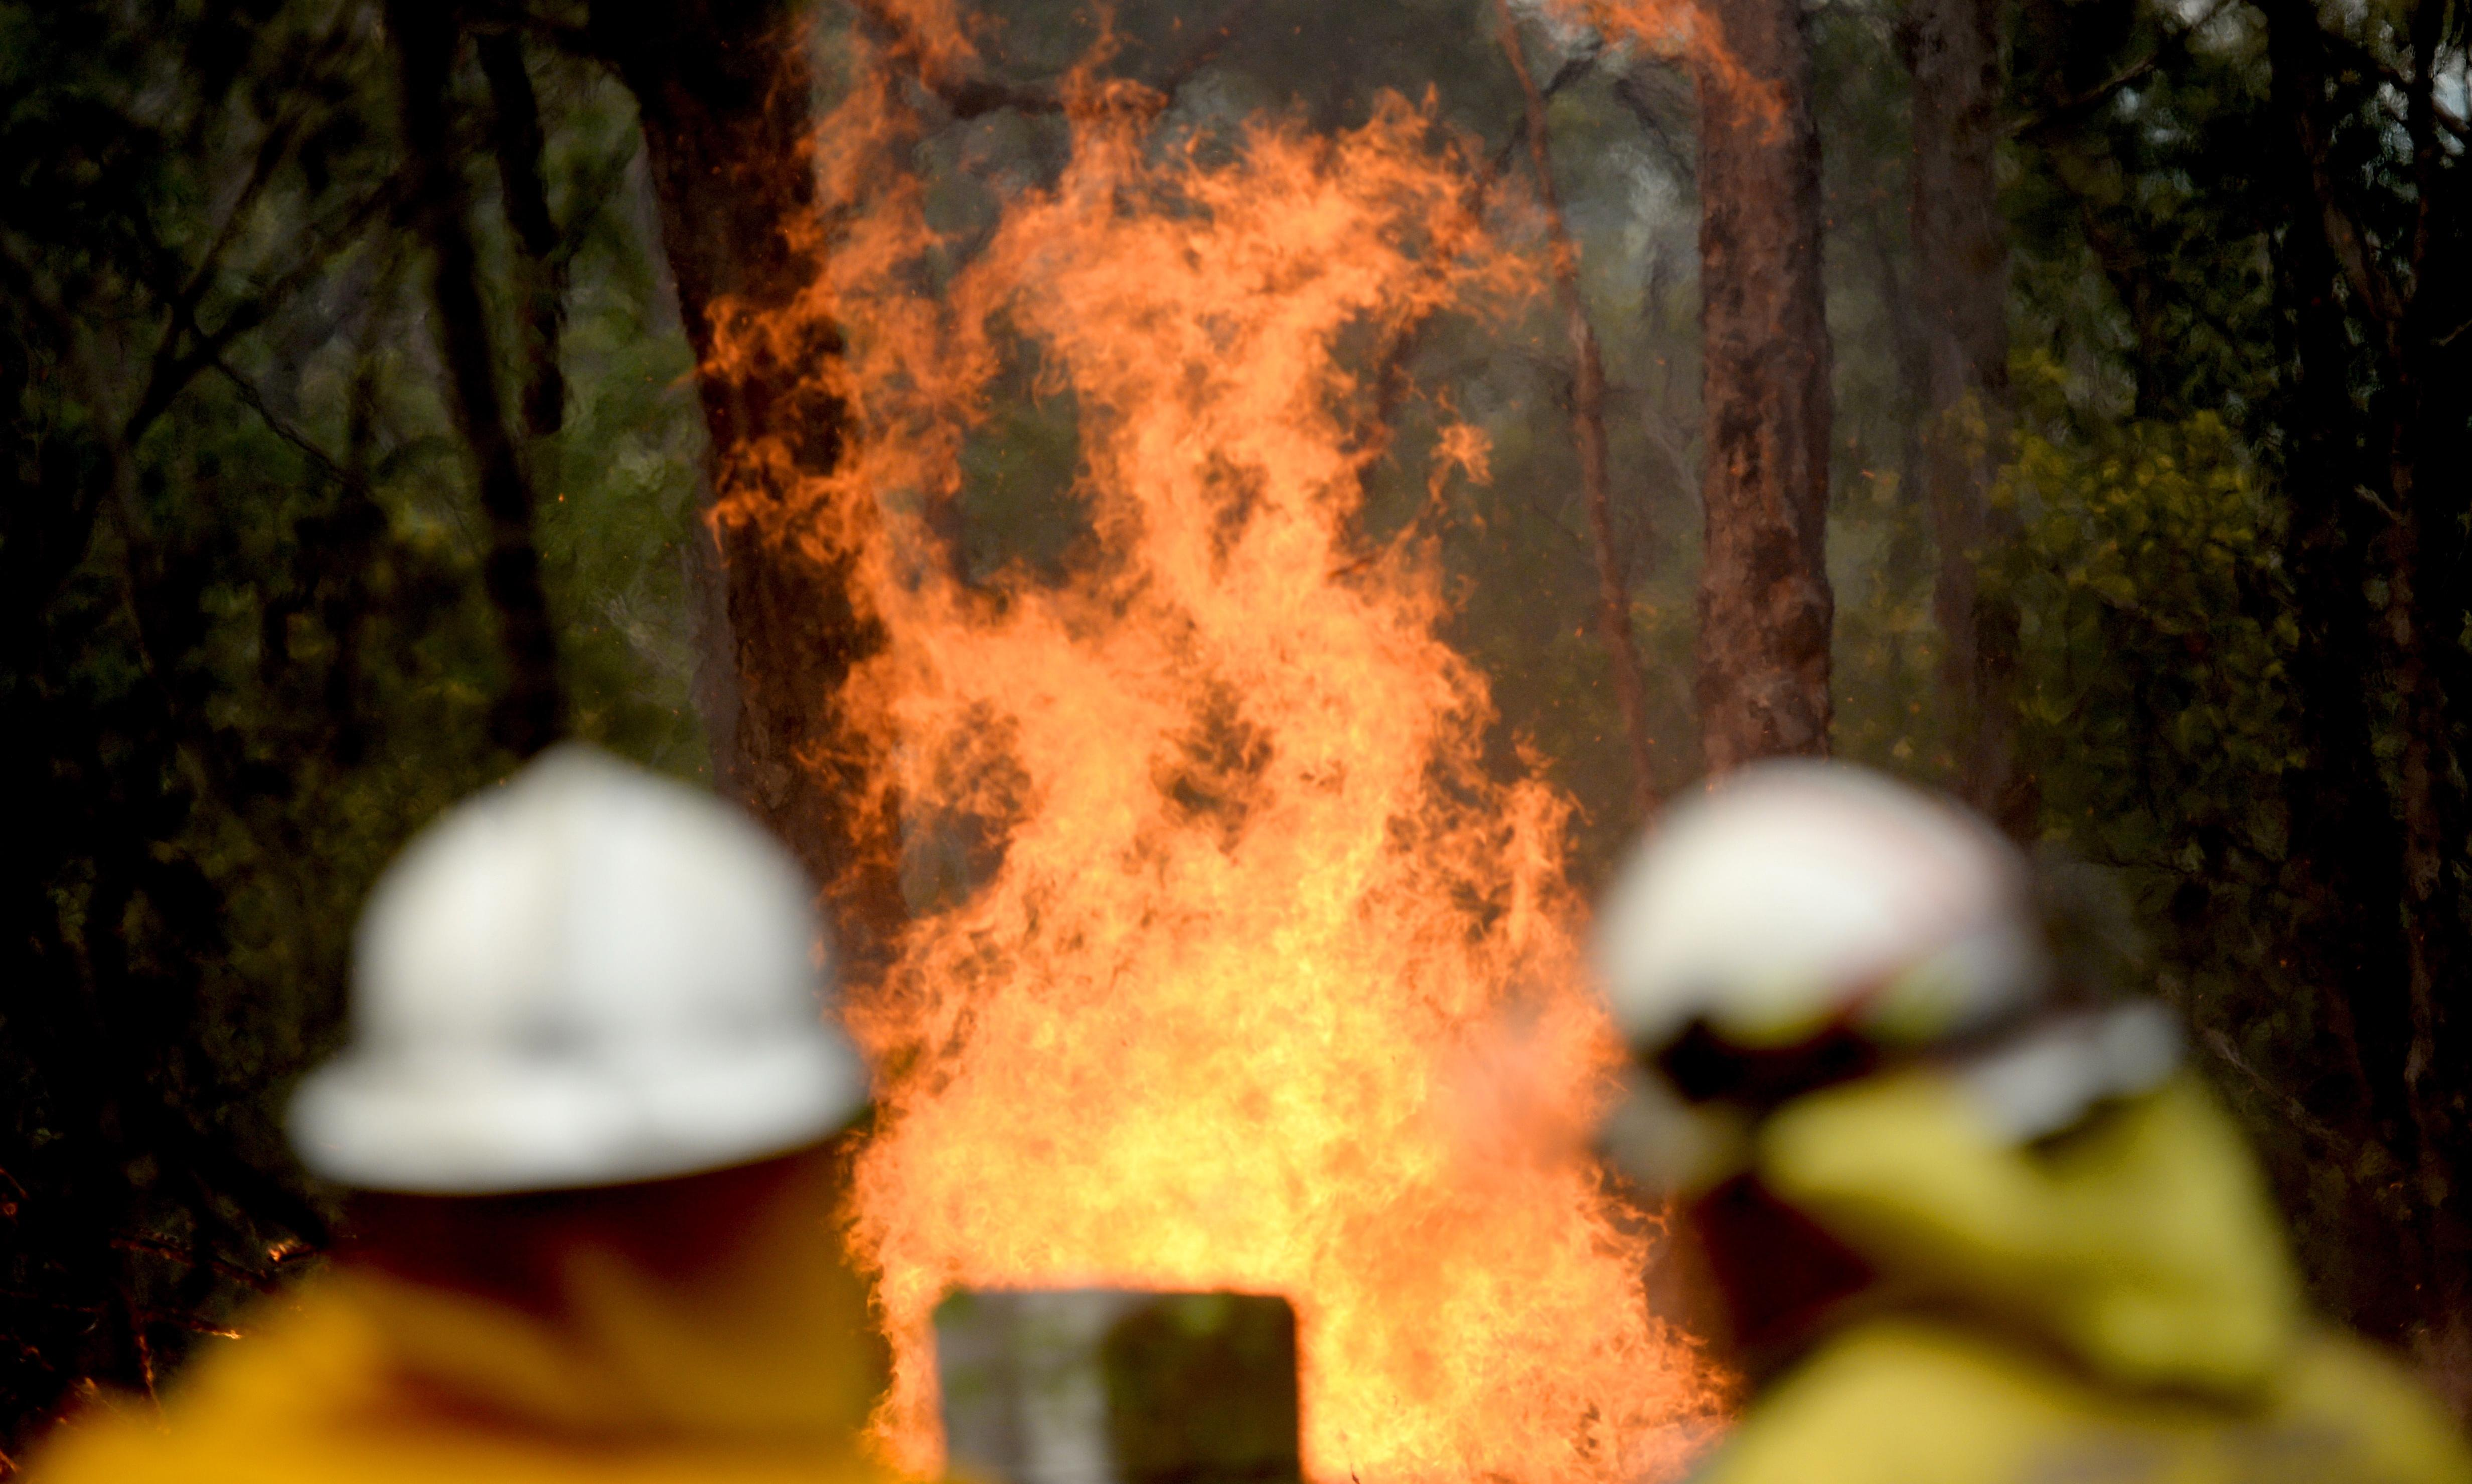 NSW and Qld fires: NSW fire devastation 'worse than expected', minister says as conditions set to worsen